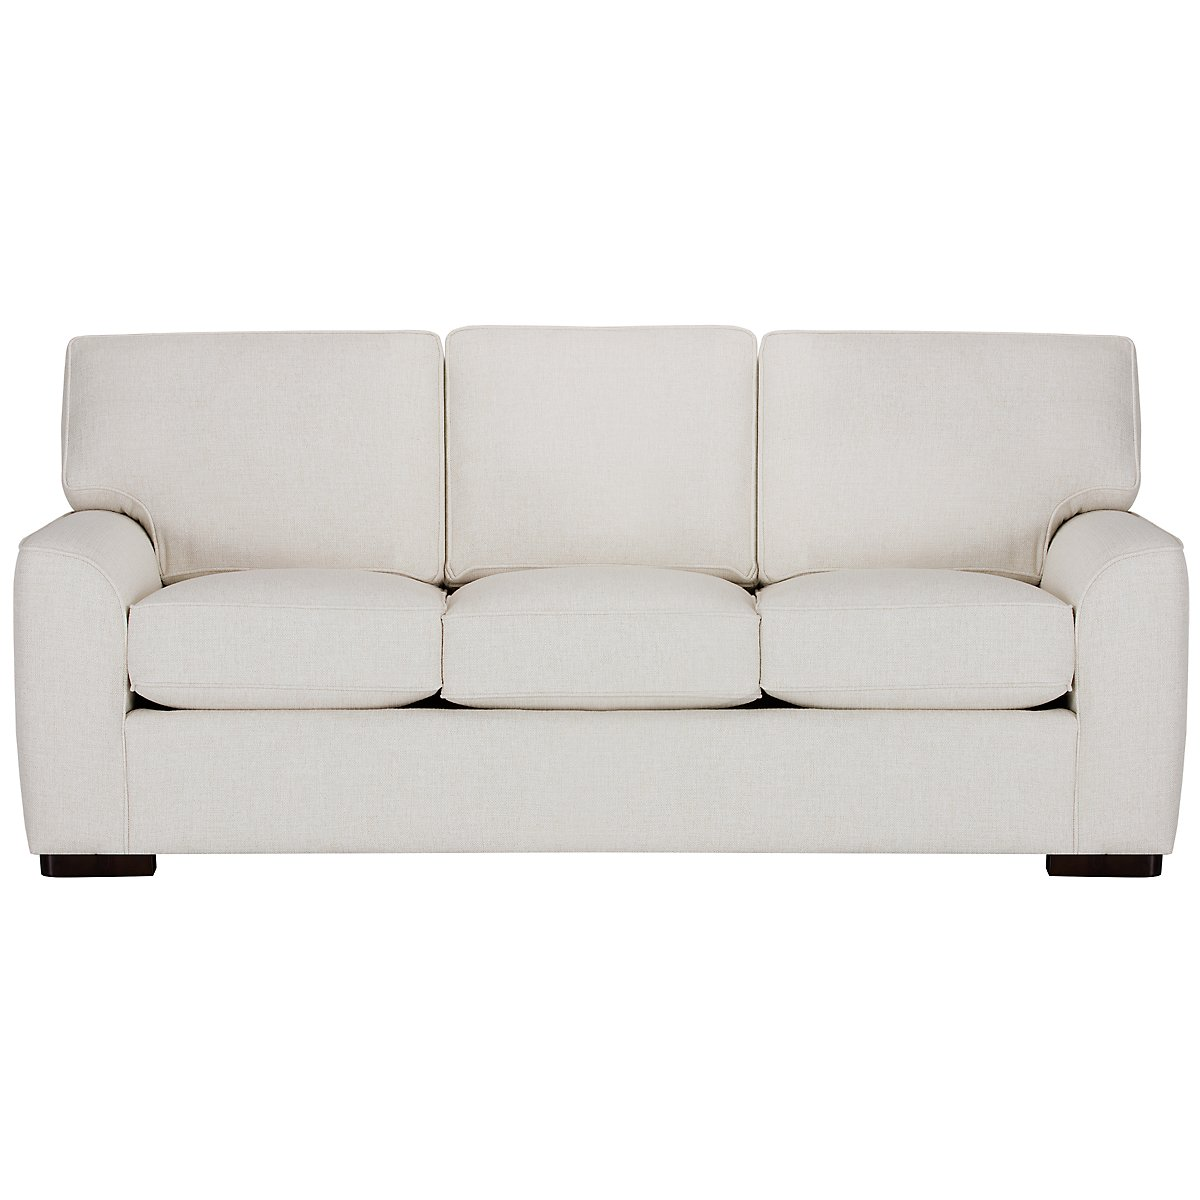 City Furniture Austin White Fabric Sofa